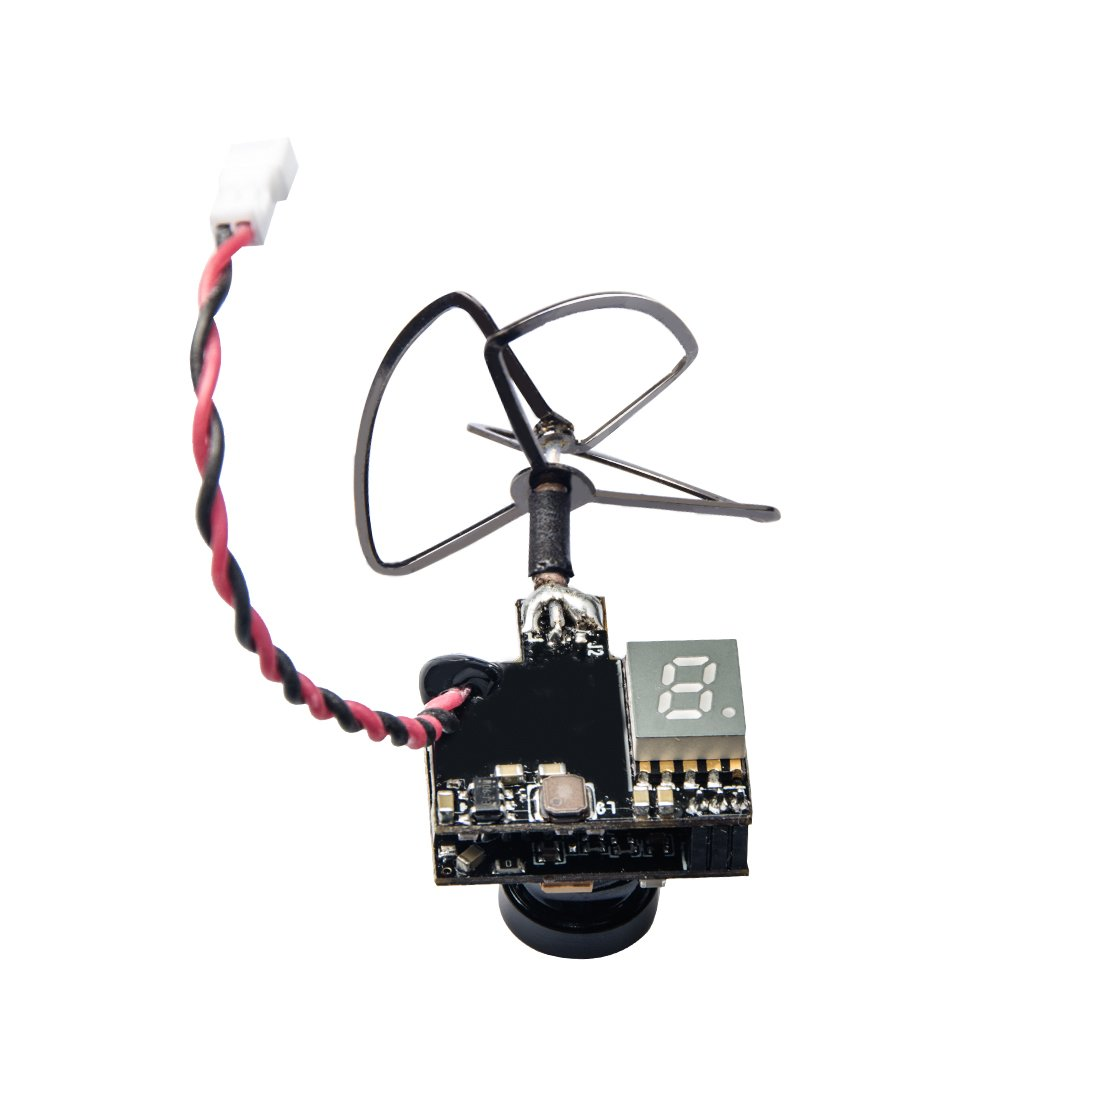 Wolfwhoop WT02 600TVL Ultra Micro AIO Camera and 200mW 5.8GHz Video Transmitter with Clover Antenna for FPV Indoor Racing